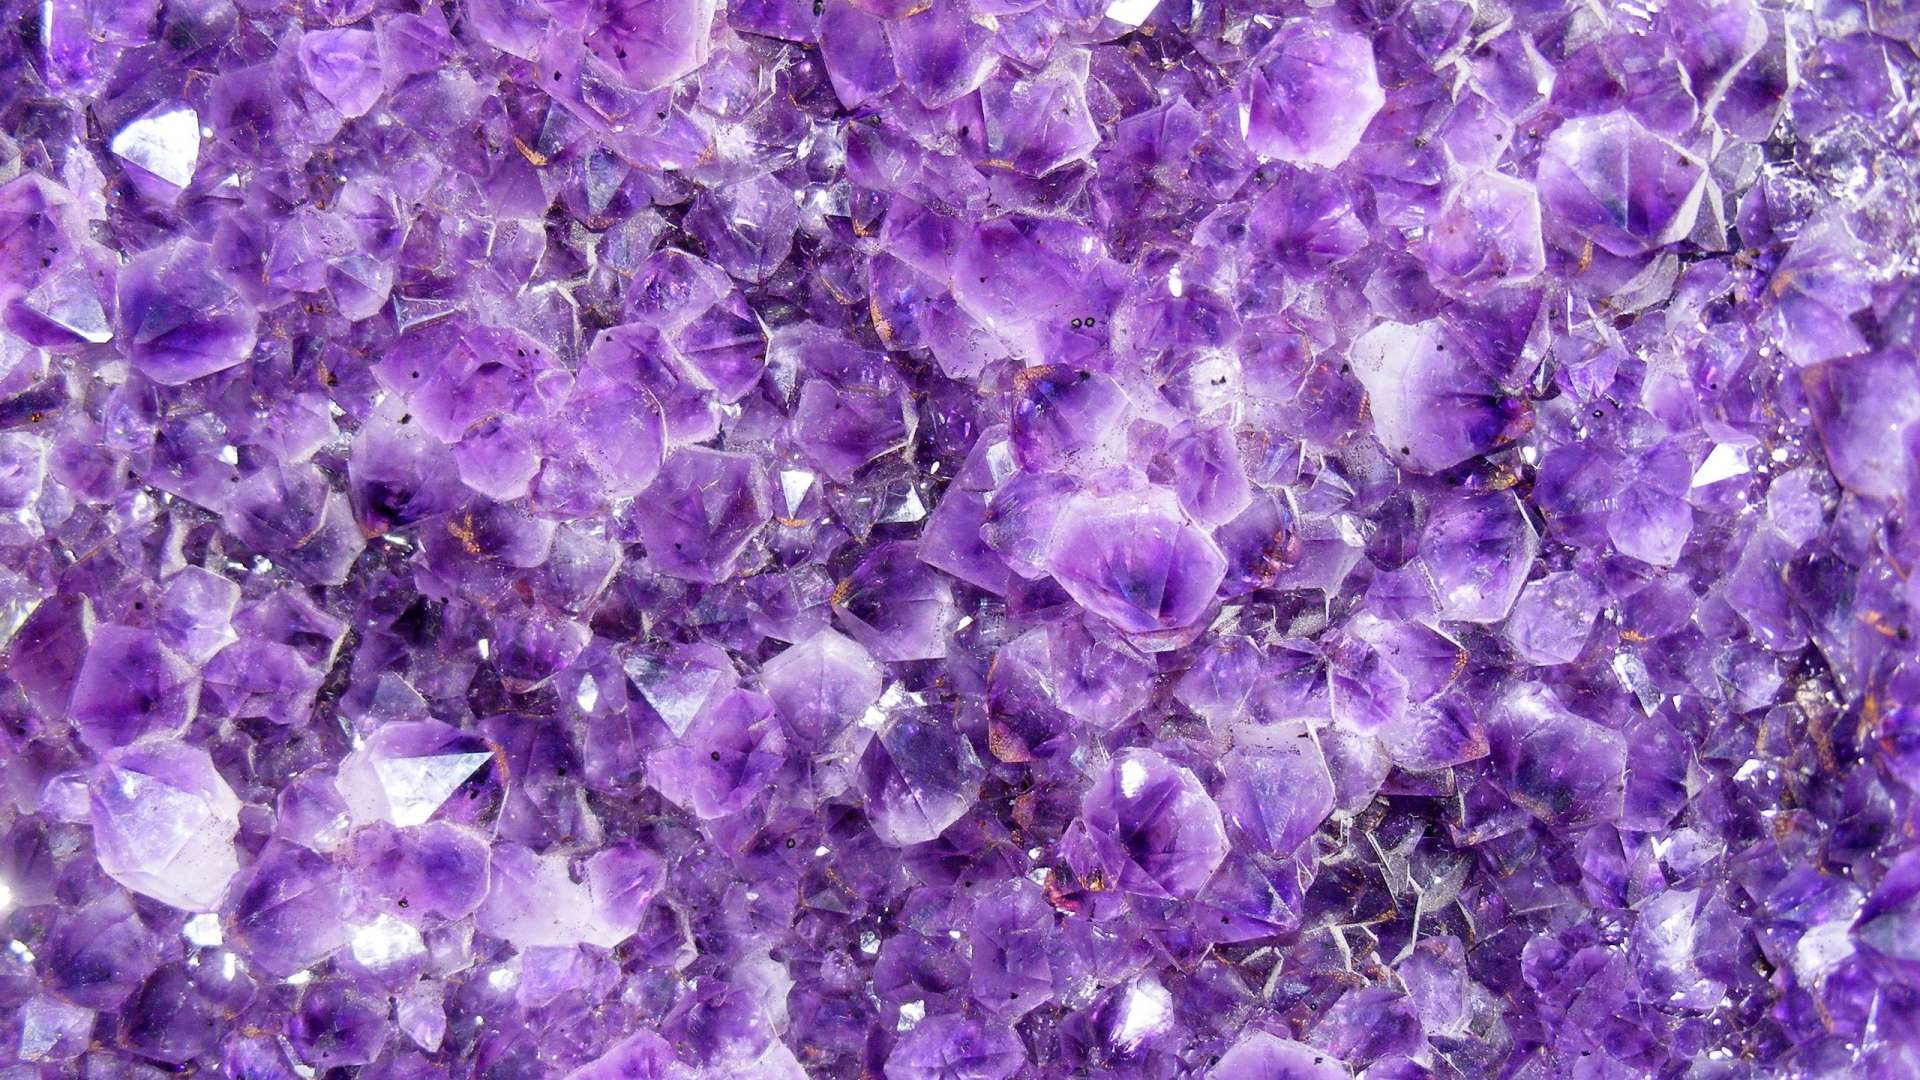 lavender flowers wallpapers 2560x1440 - photo #49